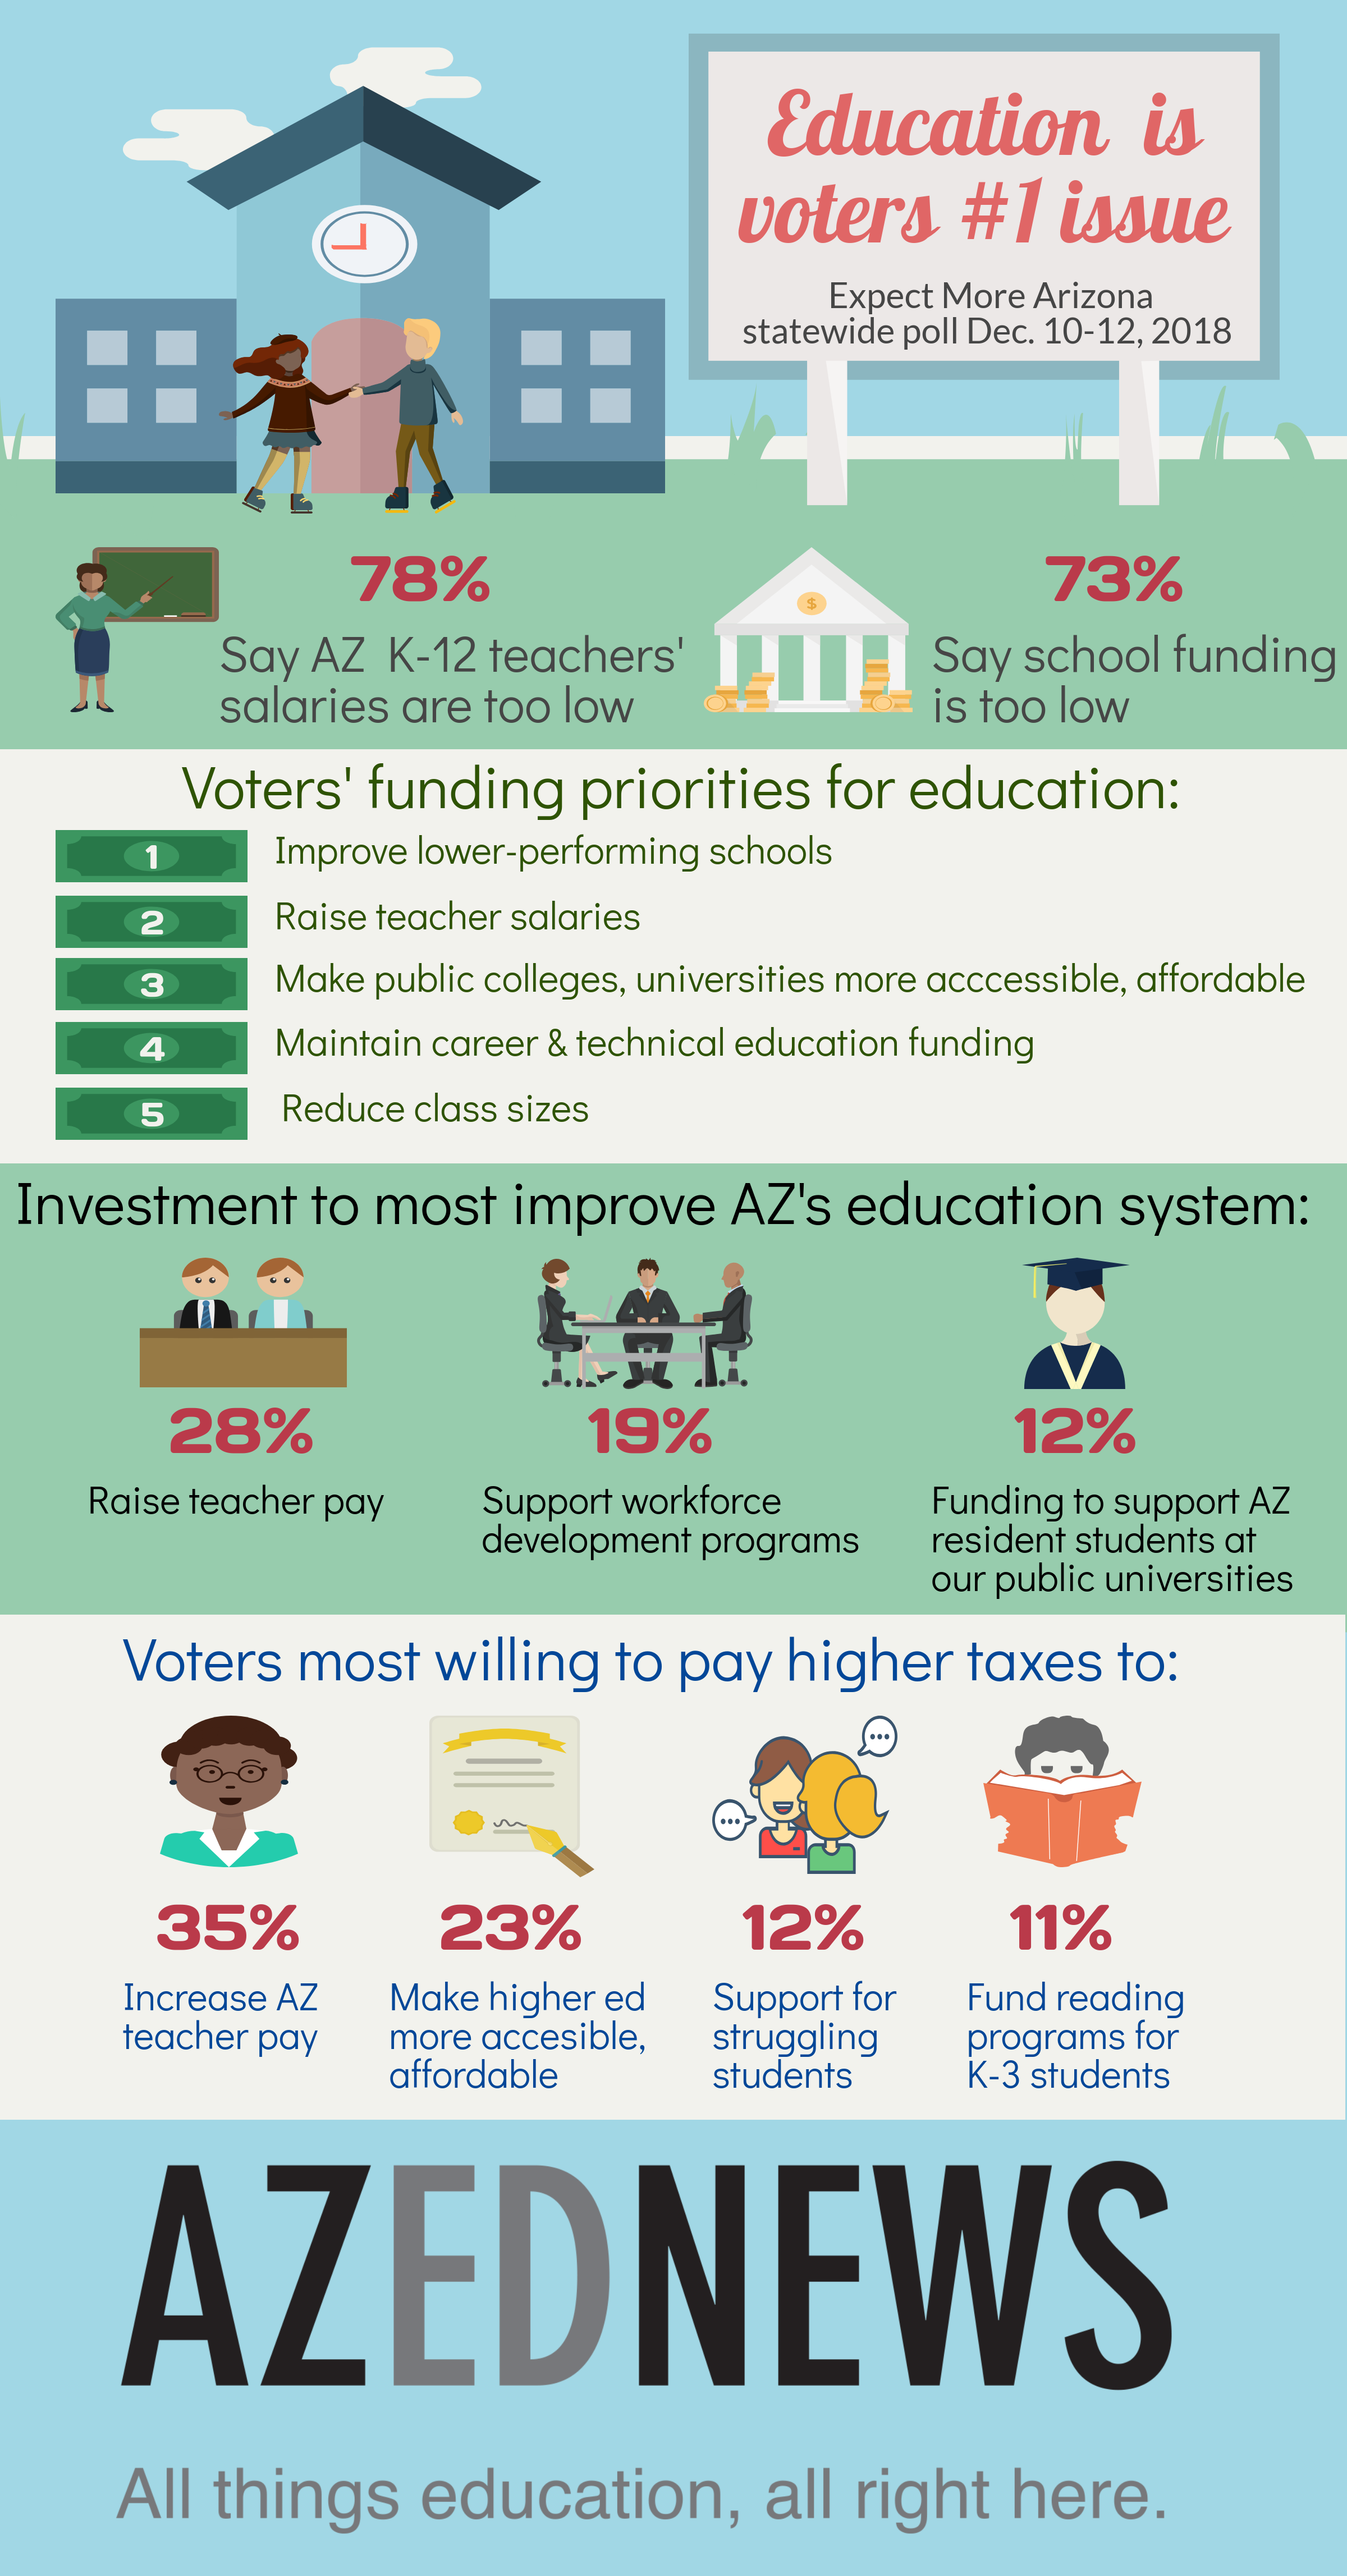 Education is voters' #1 issue AZEdNewsArizonaVotersOnEducationInfographic